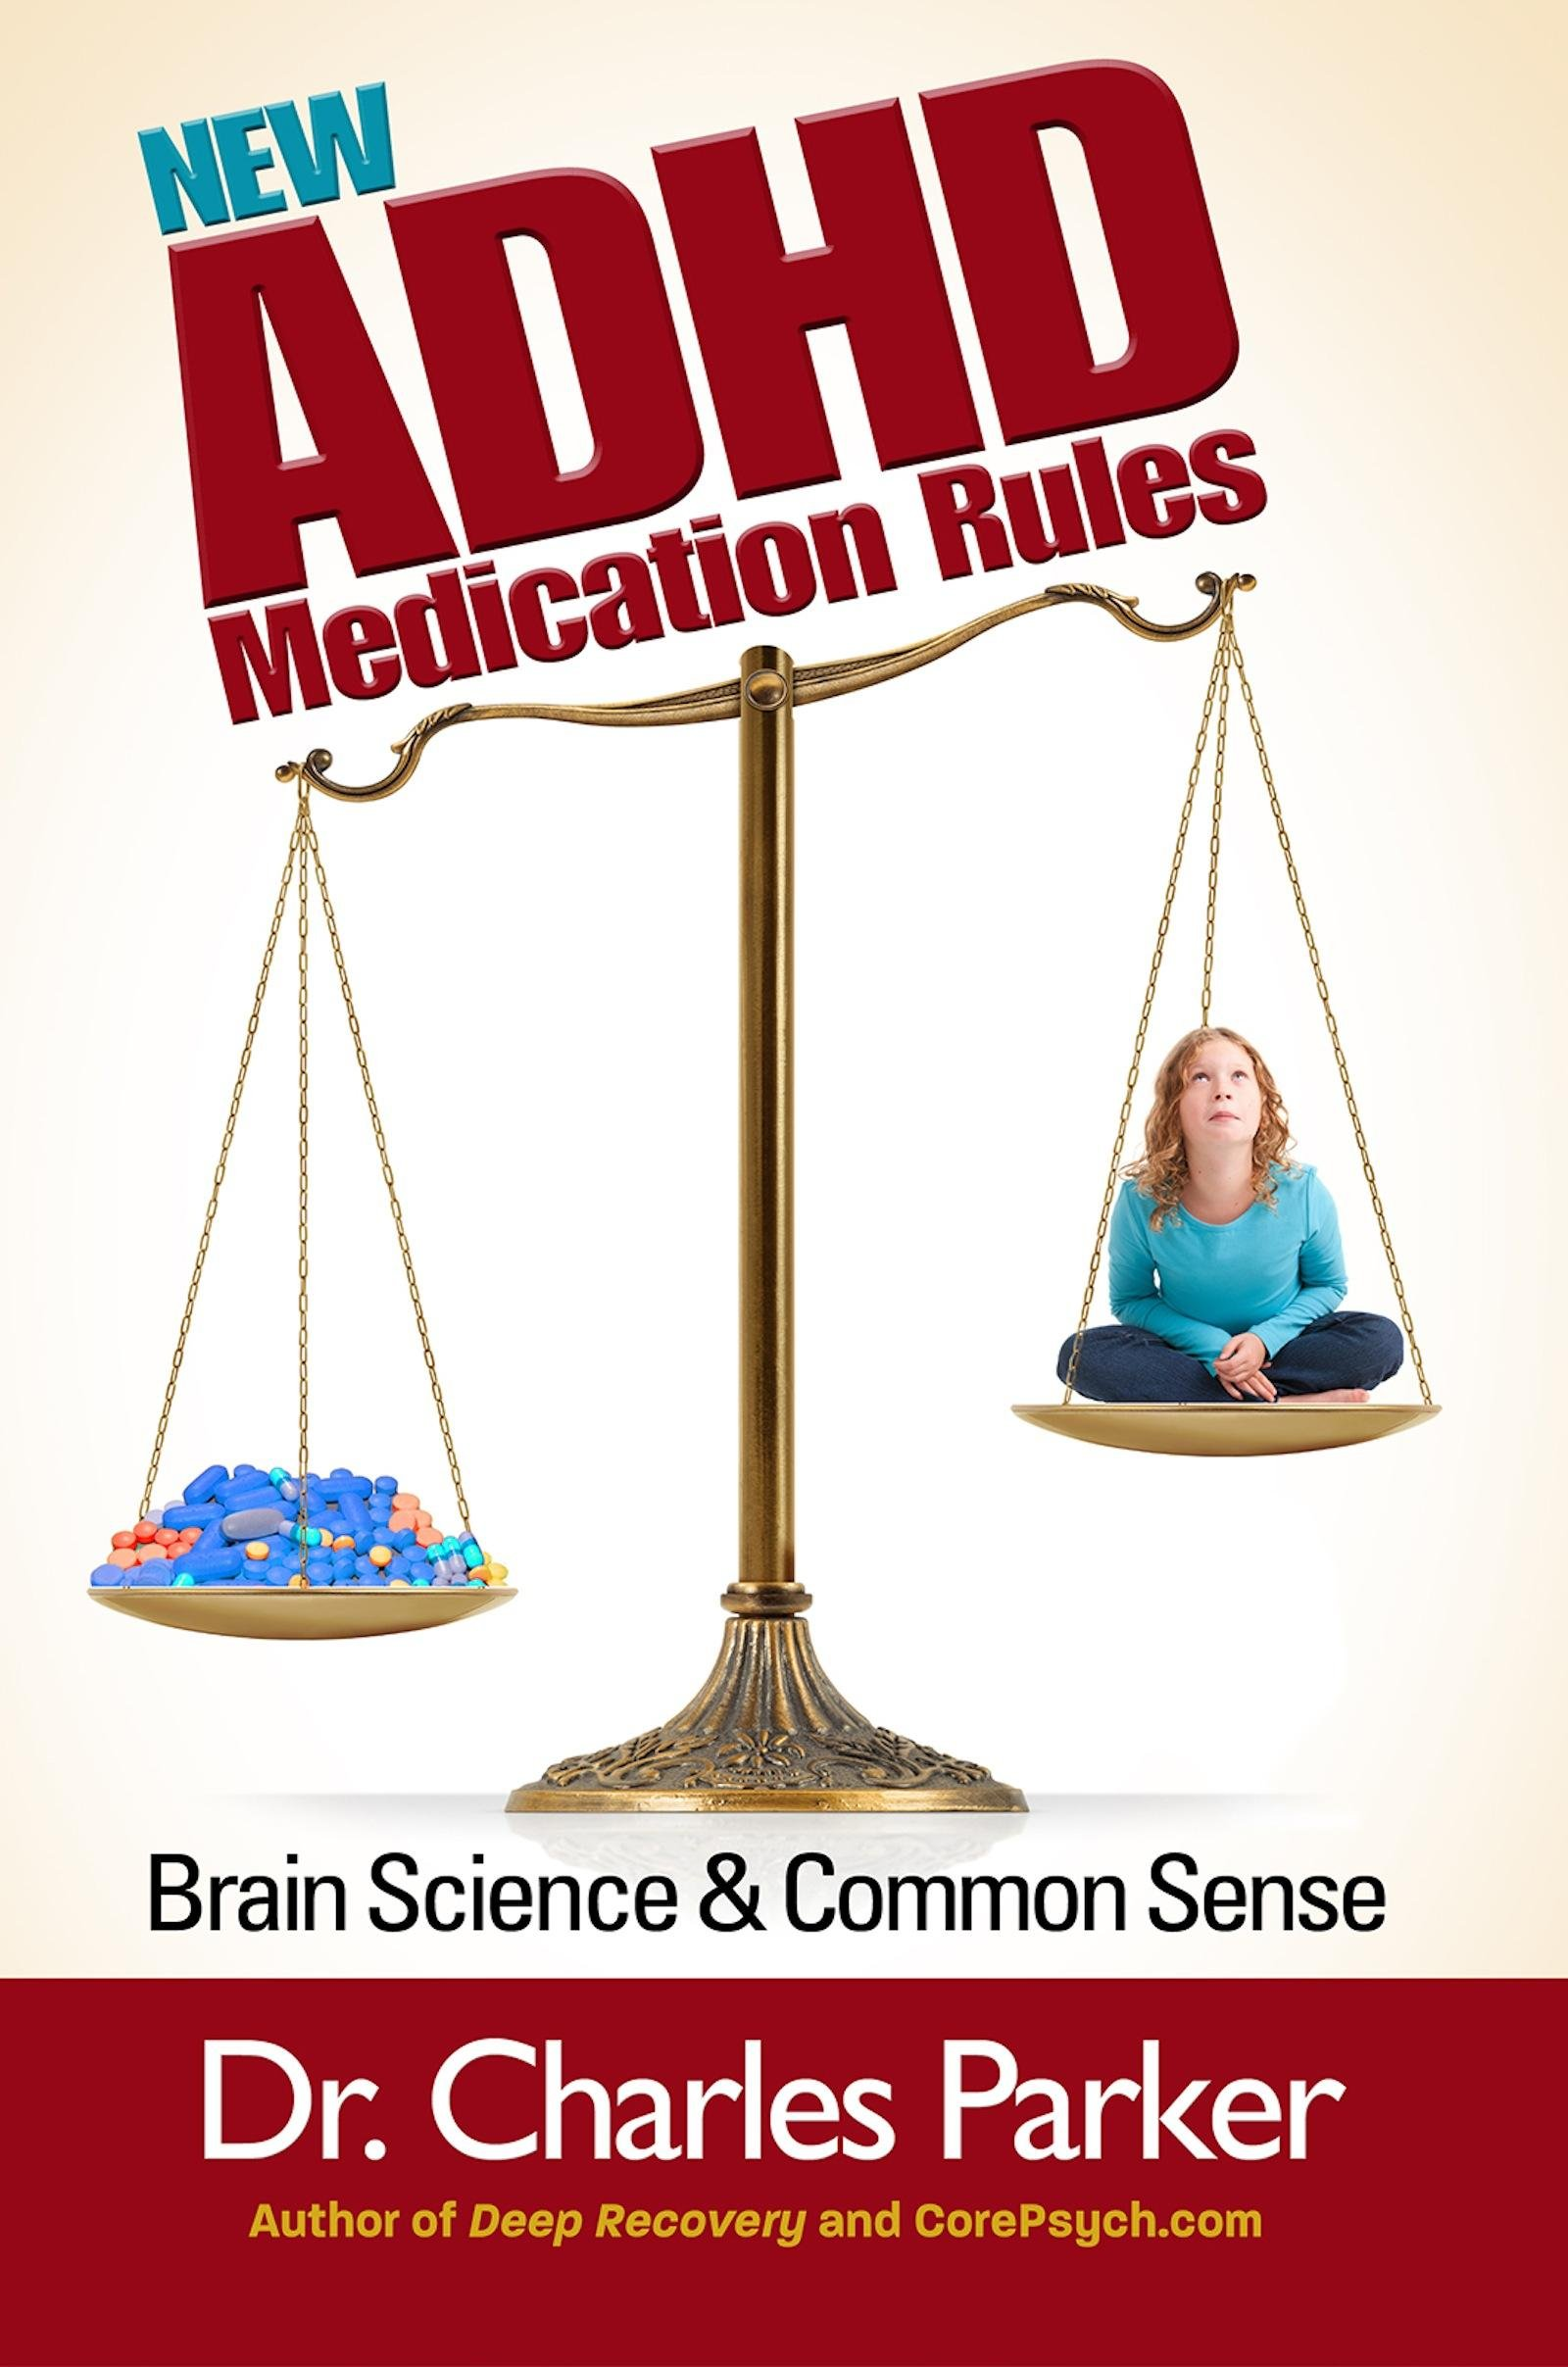 New ADHD Medication Rules - Brain Science & Common Sense